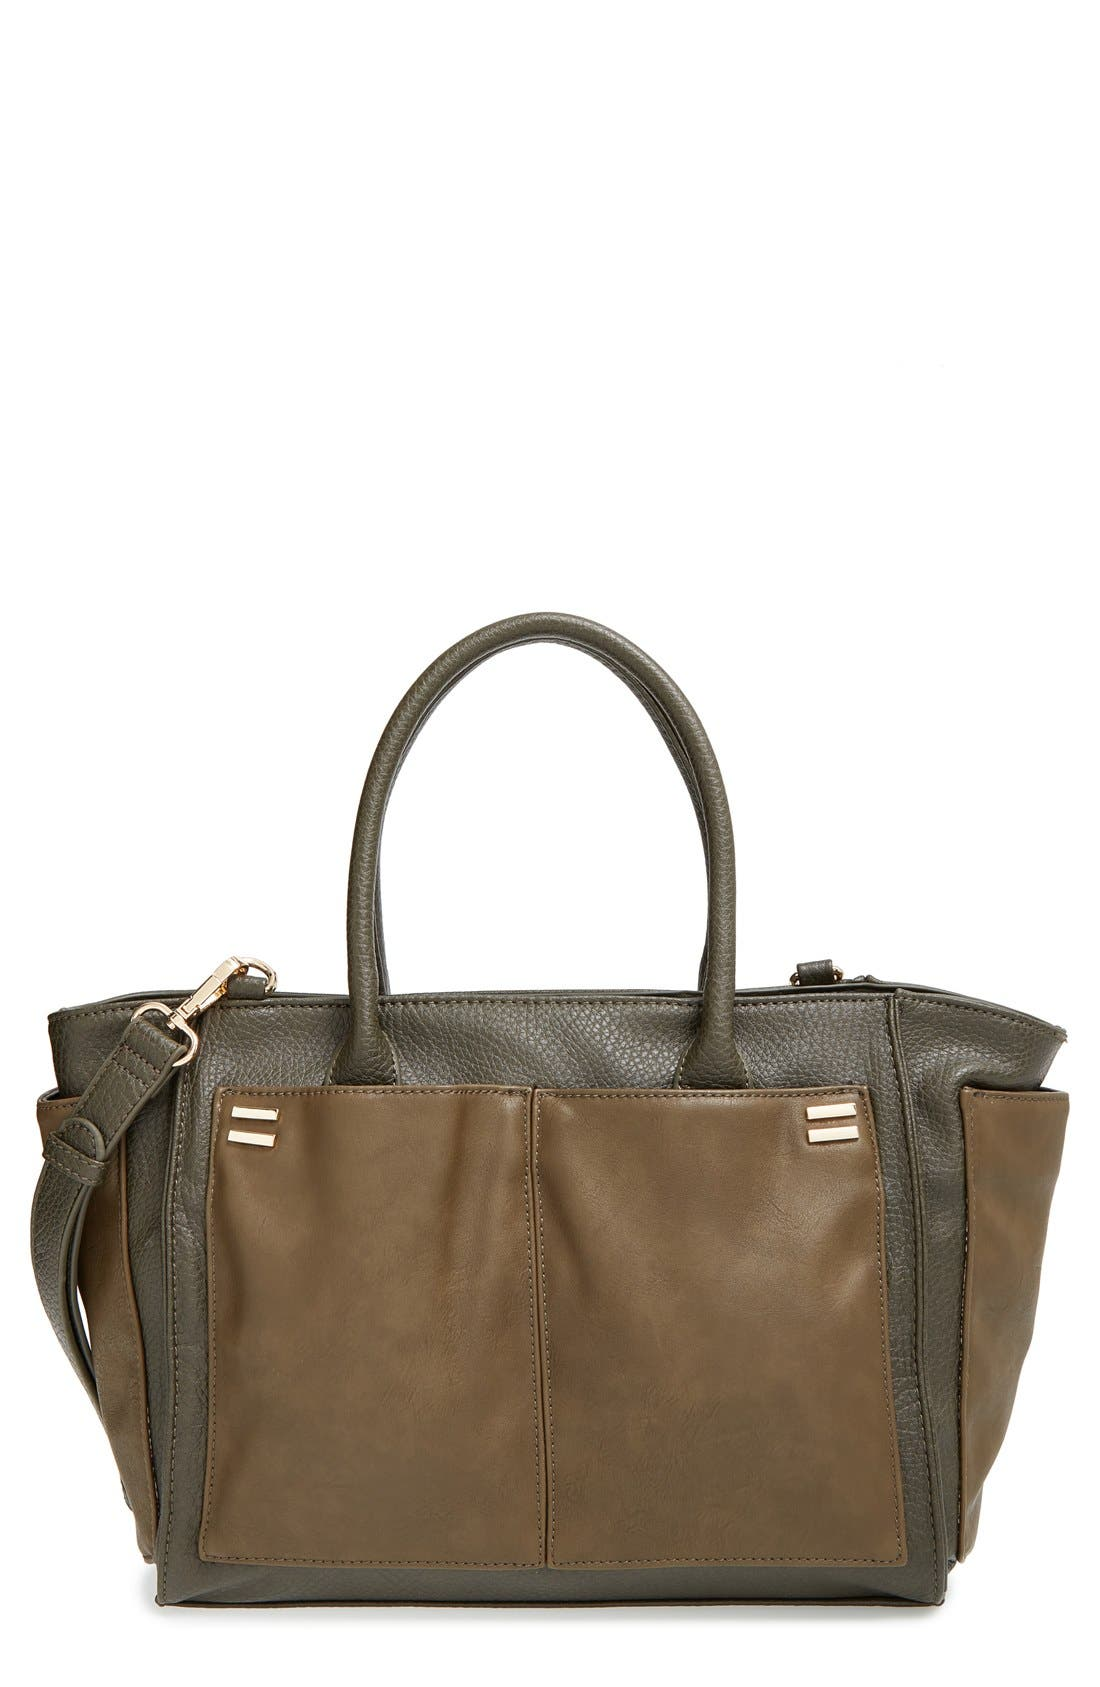 Main Image - Sole Society 'Medium Rebekah' Faux Leather Tote